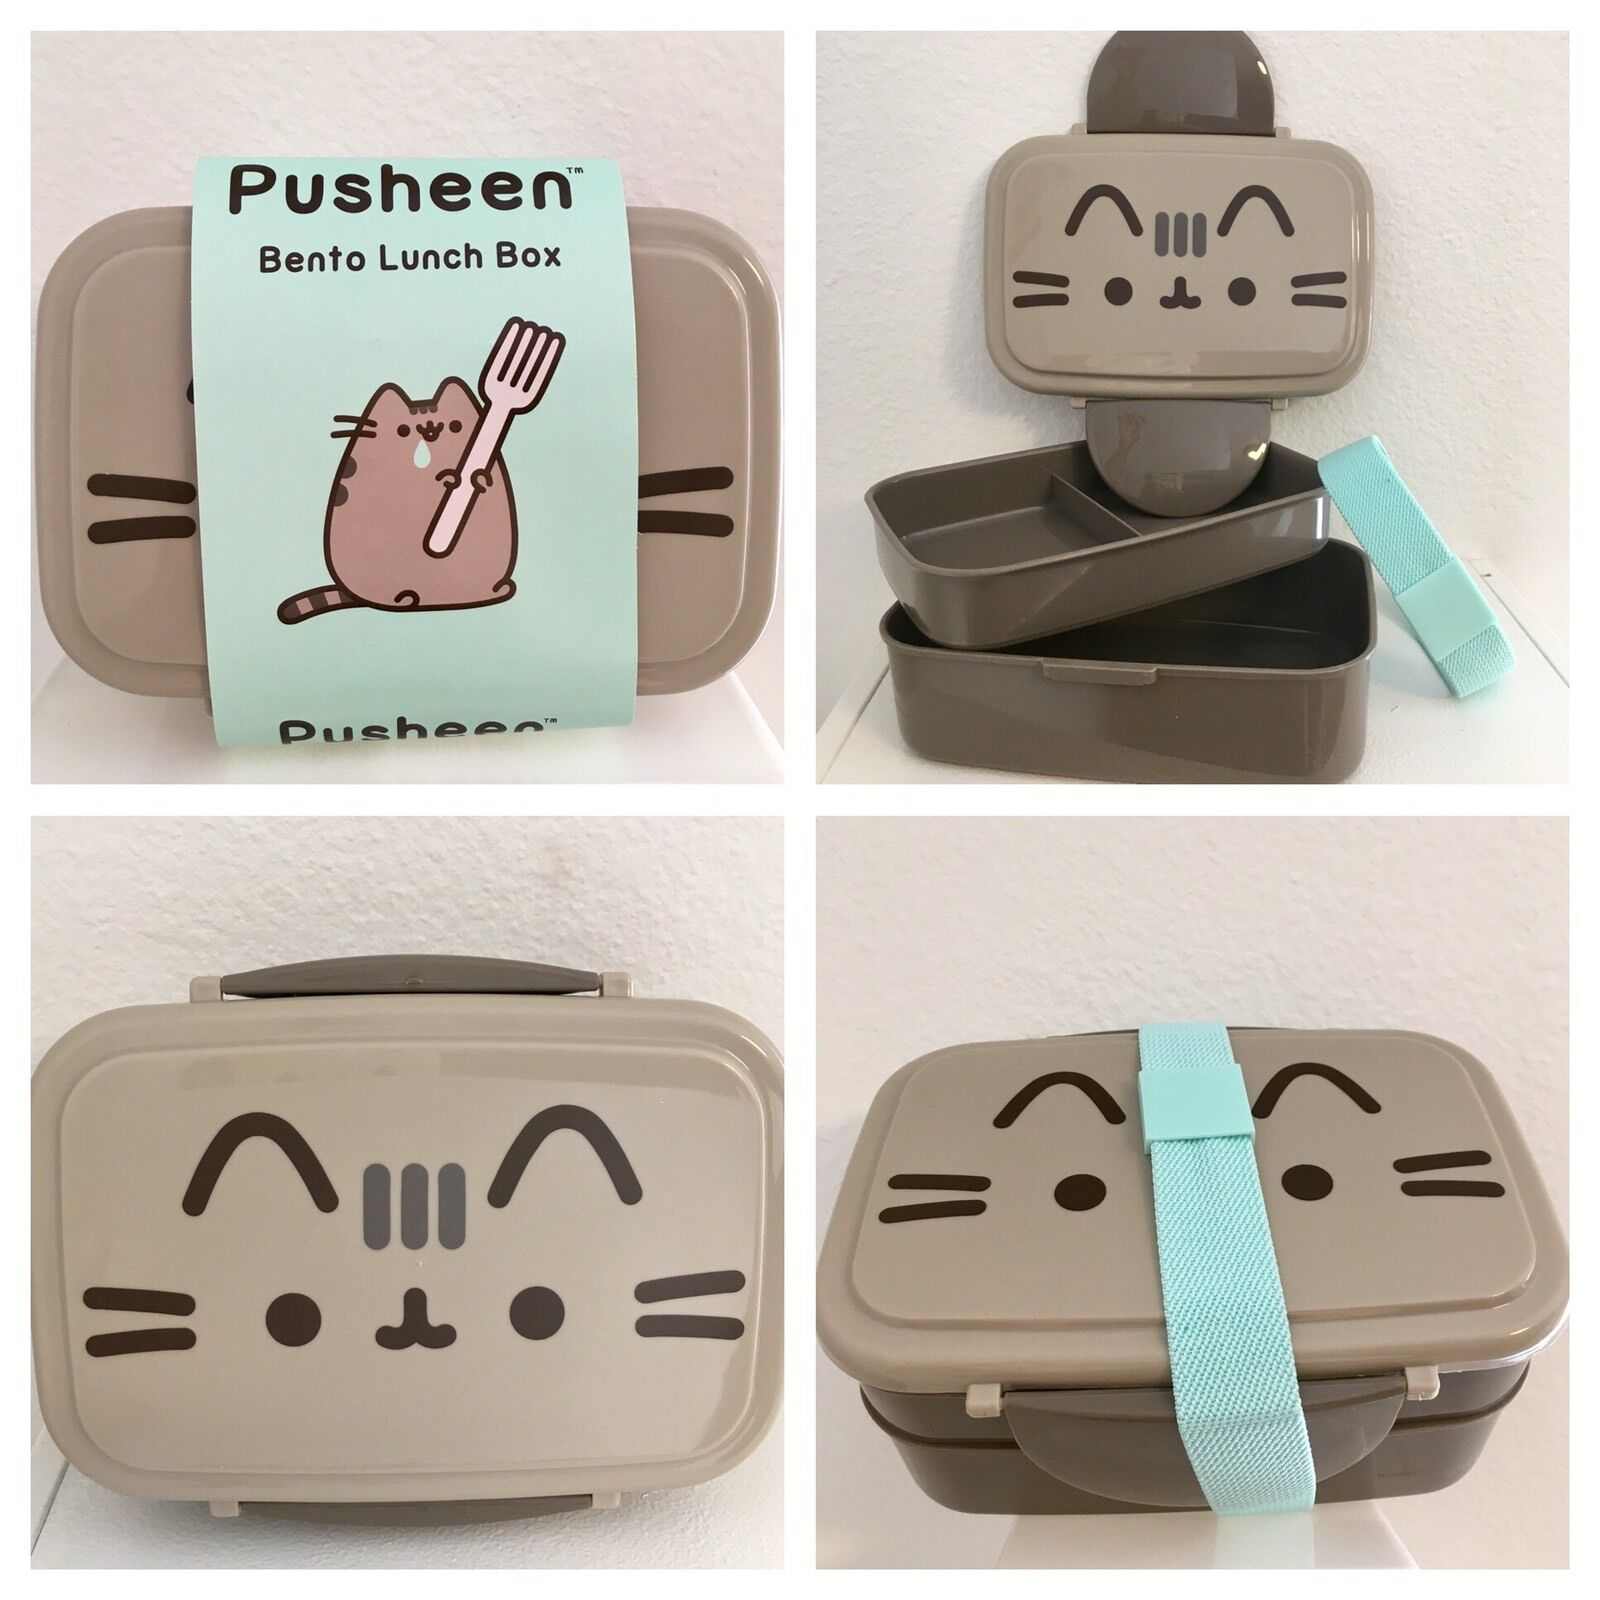 pusheen subscription box exclusive kawaii bento lunch box 2 layer stack last1 cad. Black Bedroom Furniture Sets. Home Design Ideas